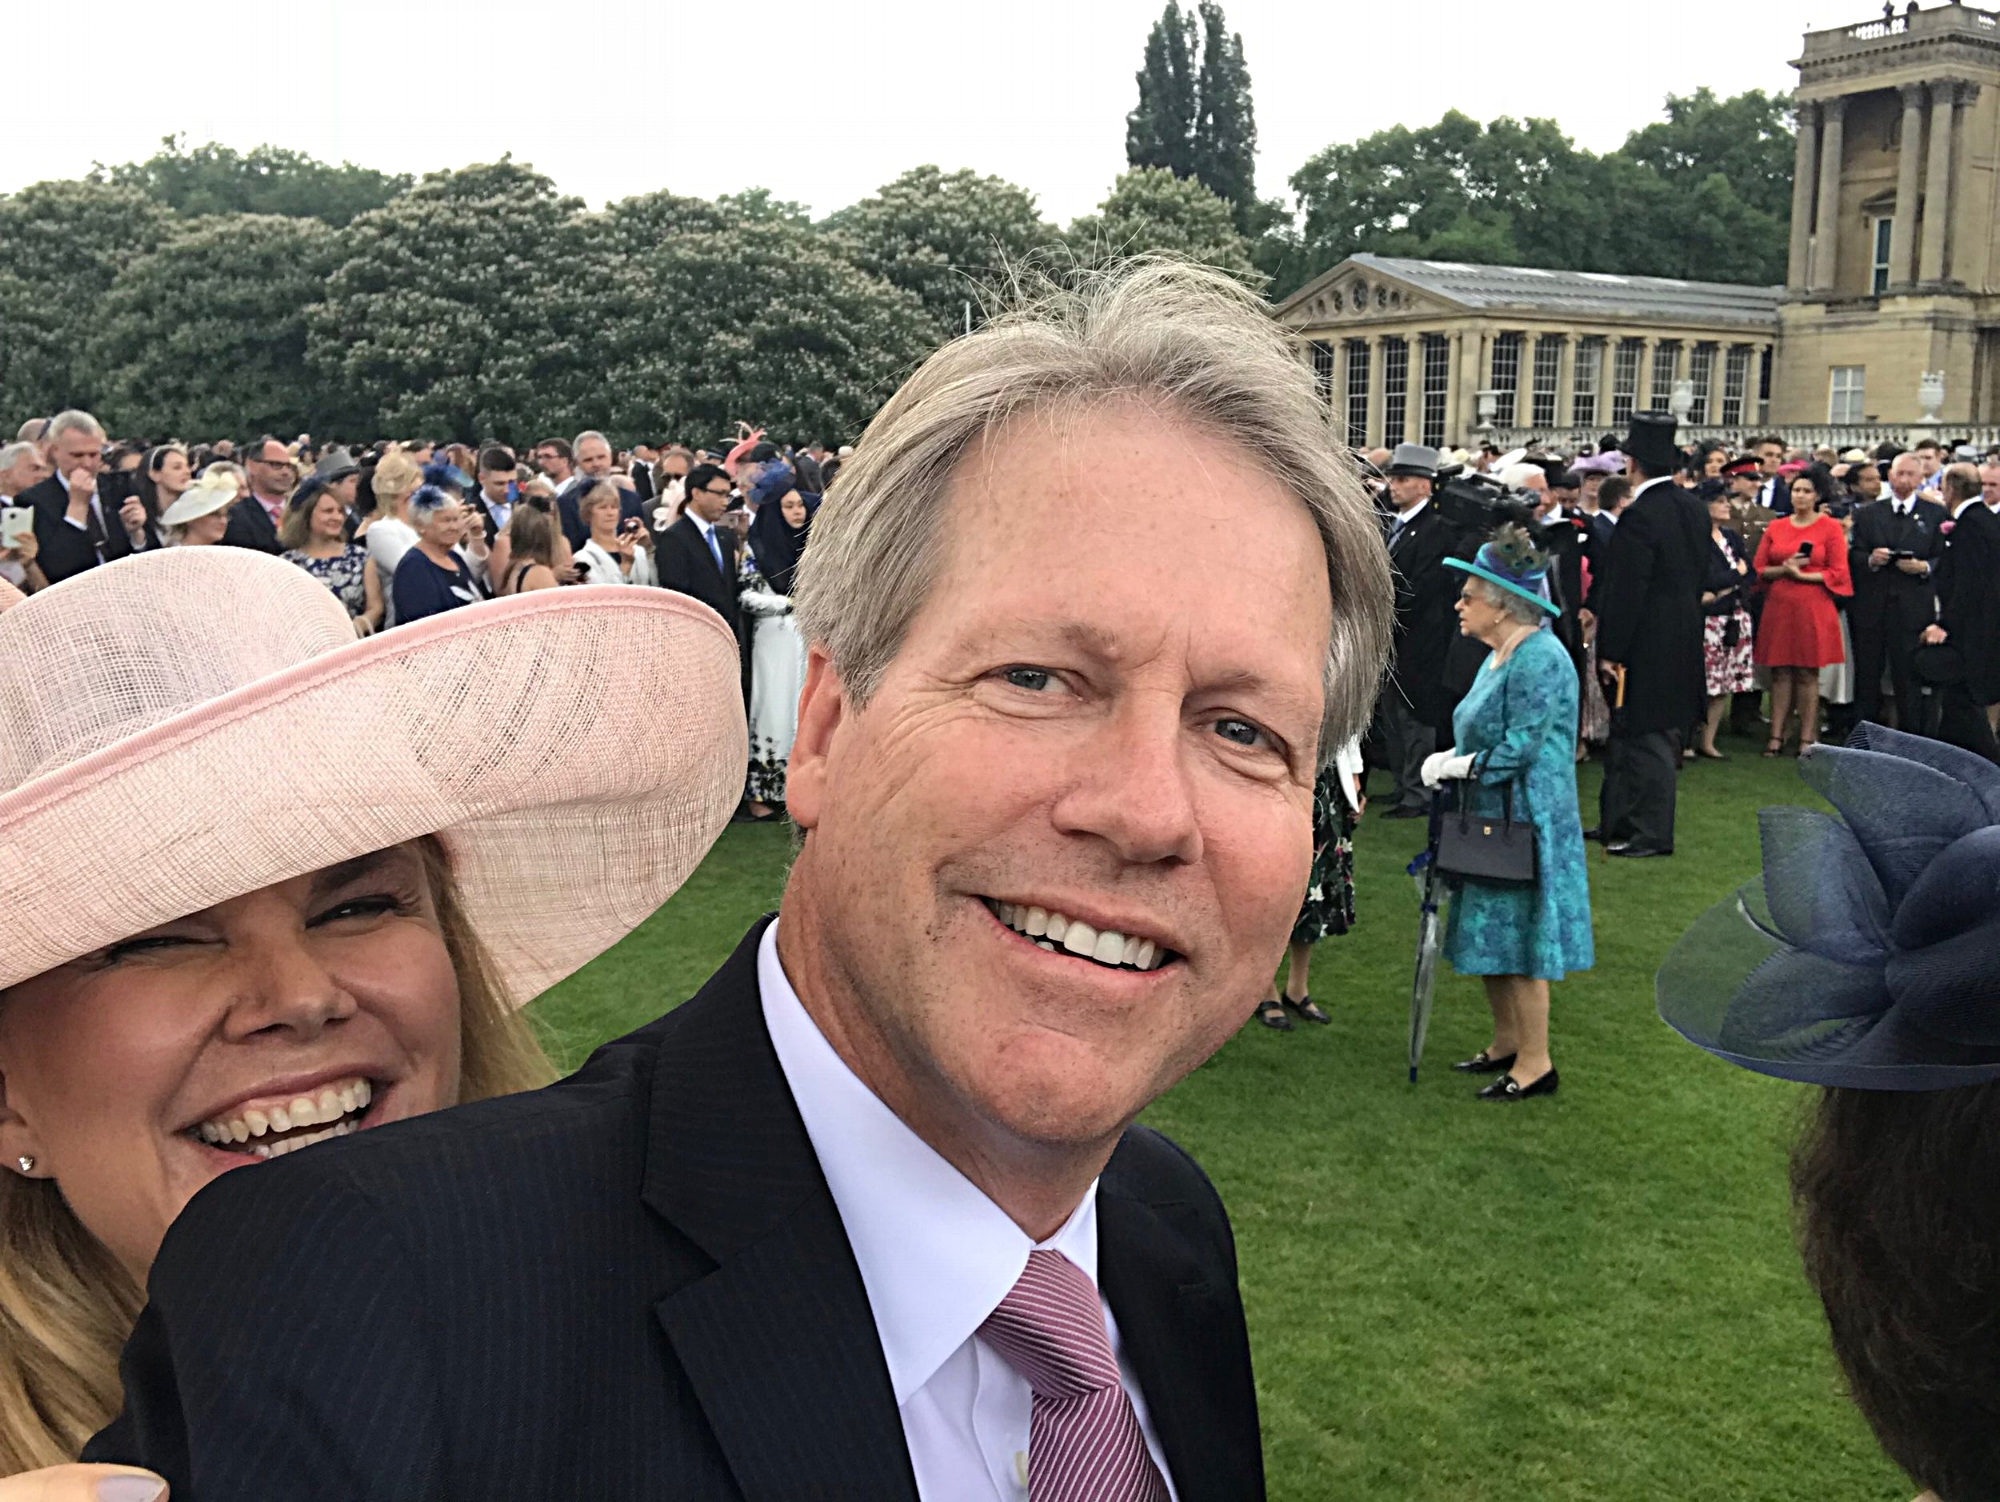 A Broad in London Taking Selfie with the Queen